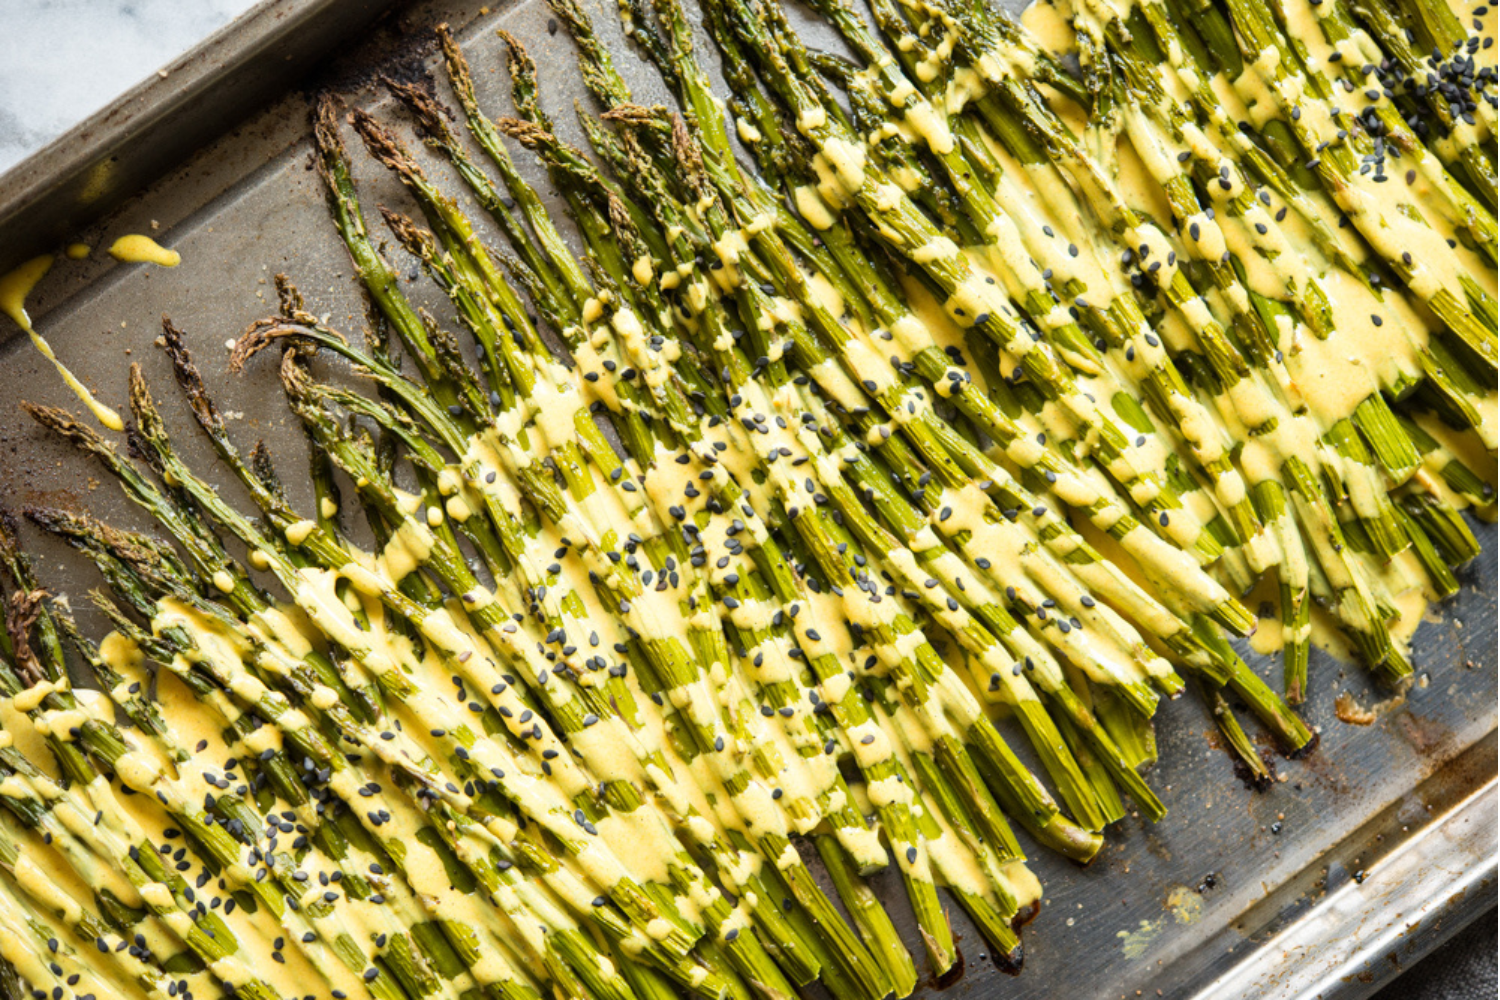 roasted asparagus on a stainless steel sheet pan with a bright yellow lemon cardamom sauce poured over top and garnished with black sesame seeds